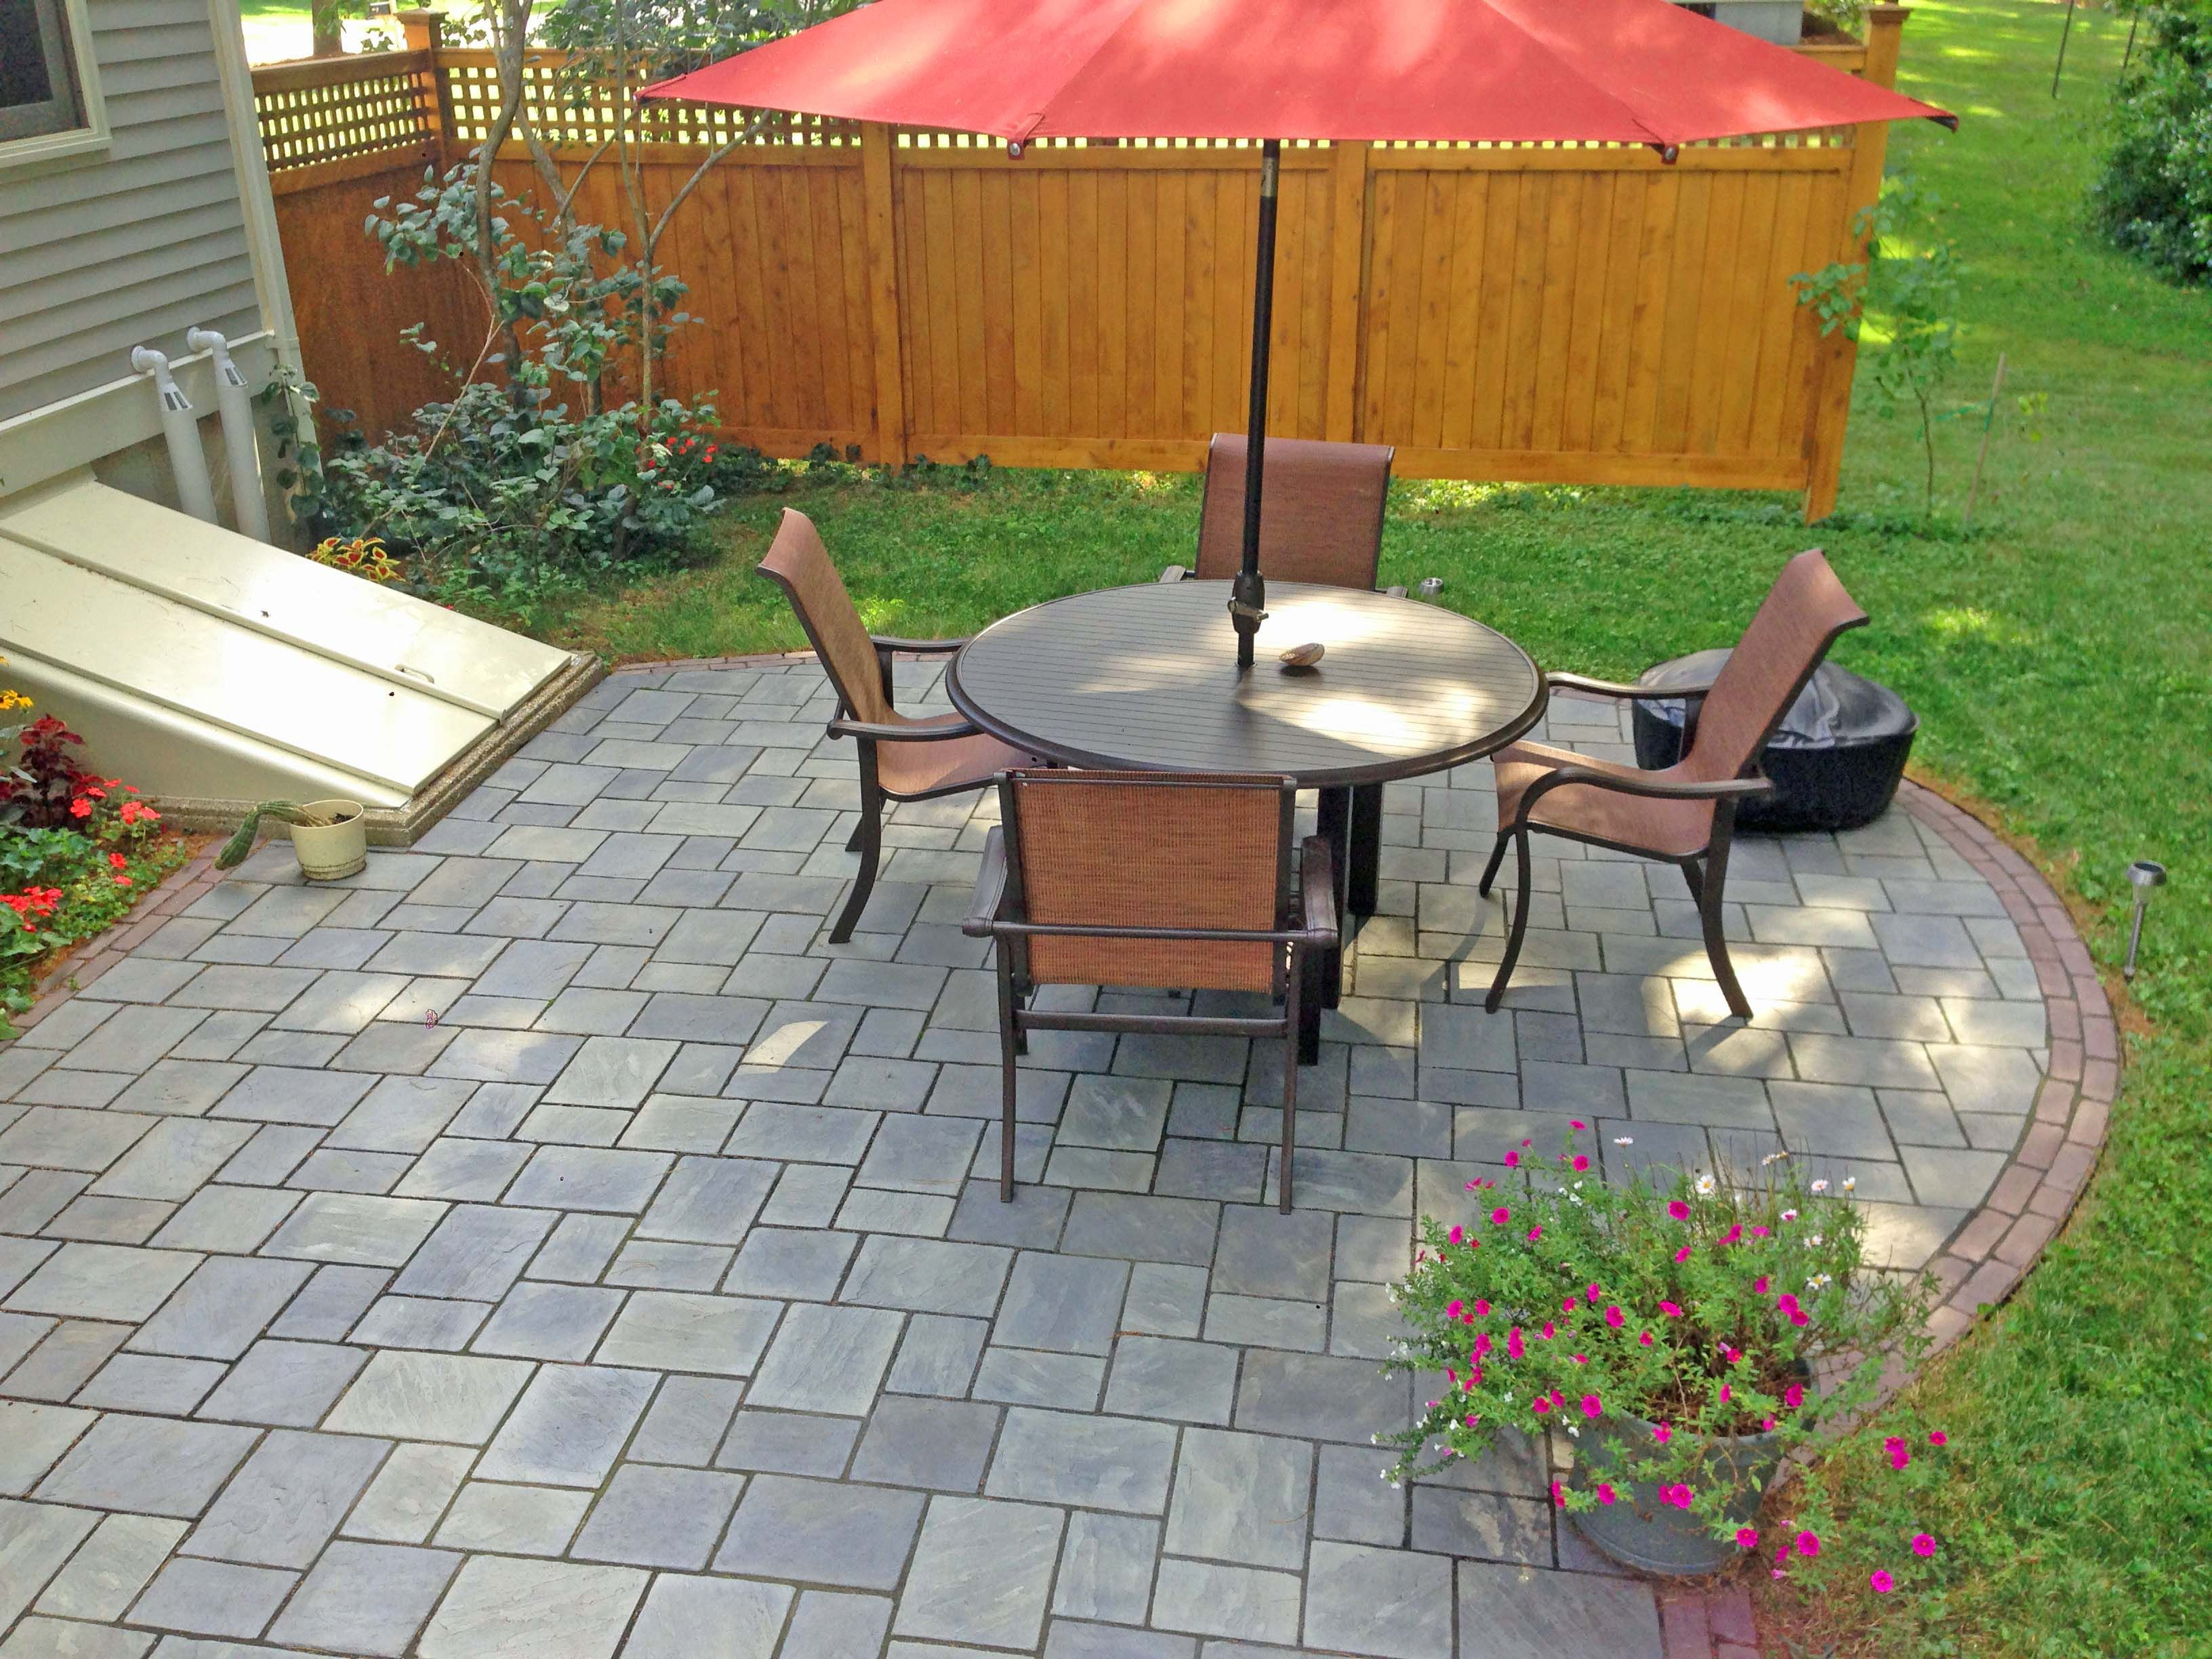 Unilock Patio With Richcliff Pavers And Copthorne Accent Rows